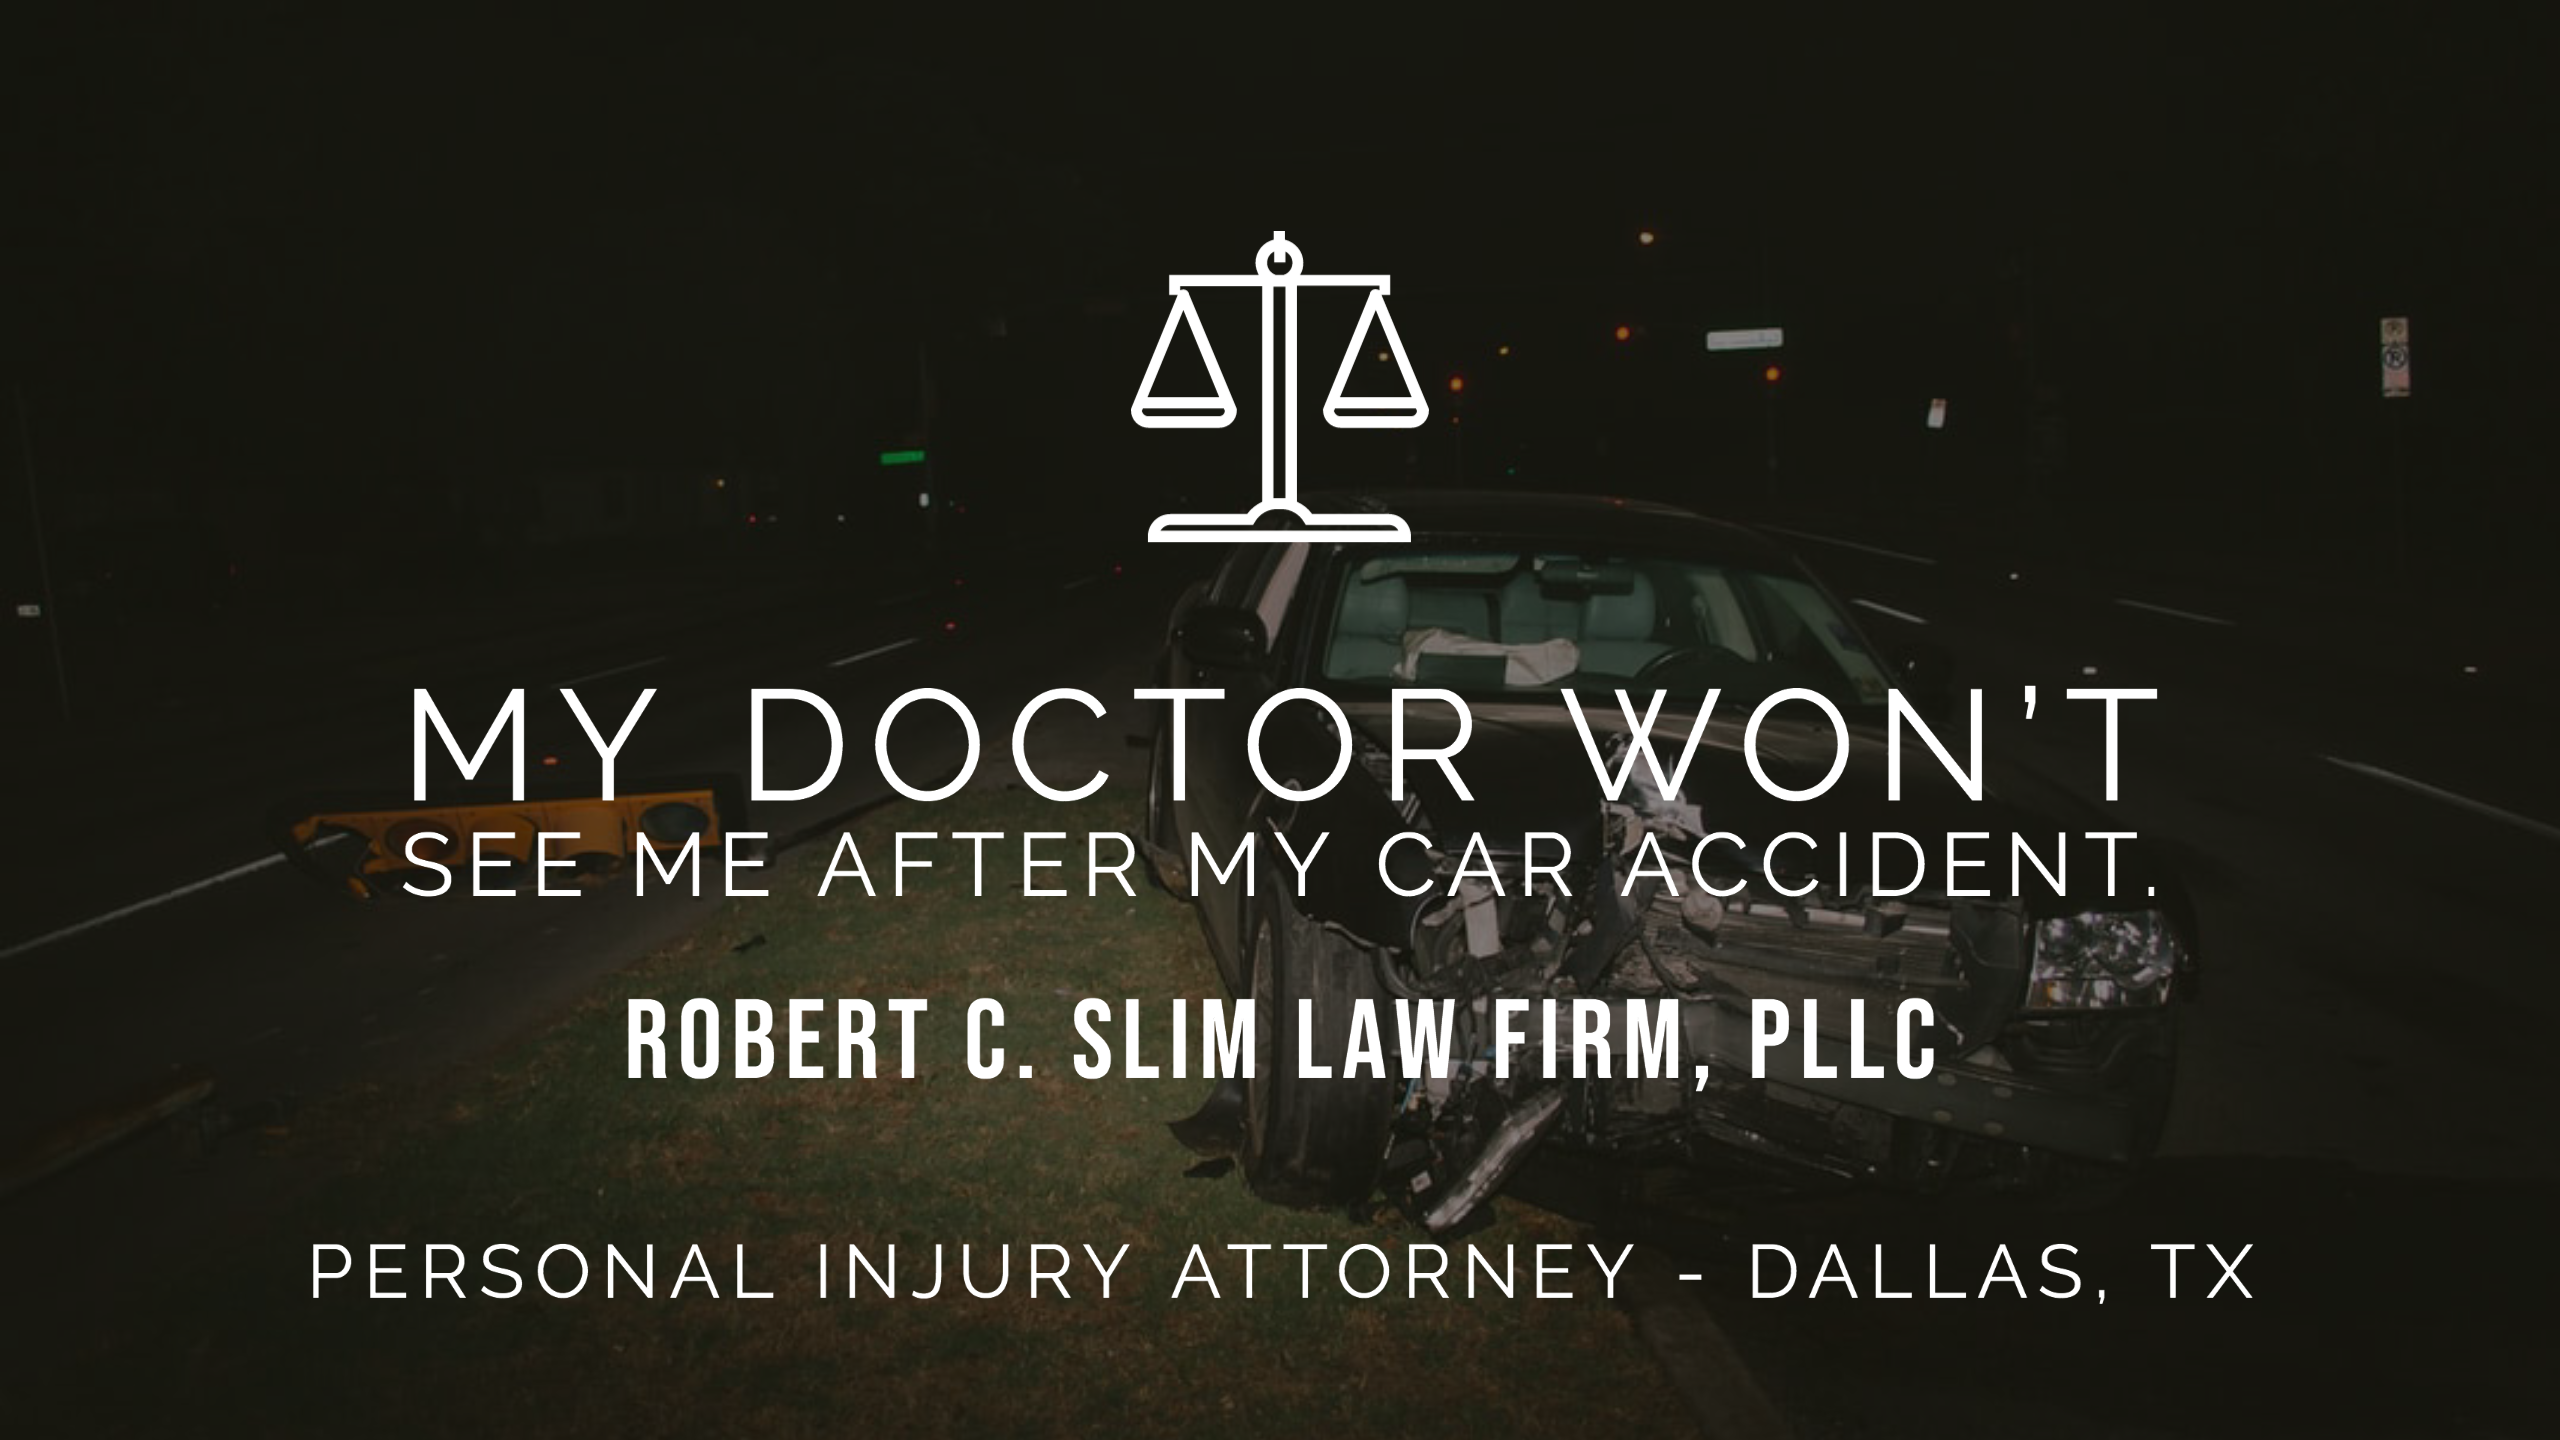 My Doctor Won't See Me After My Car Accident